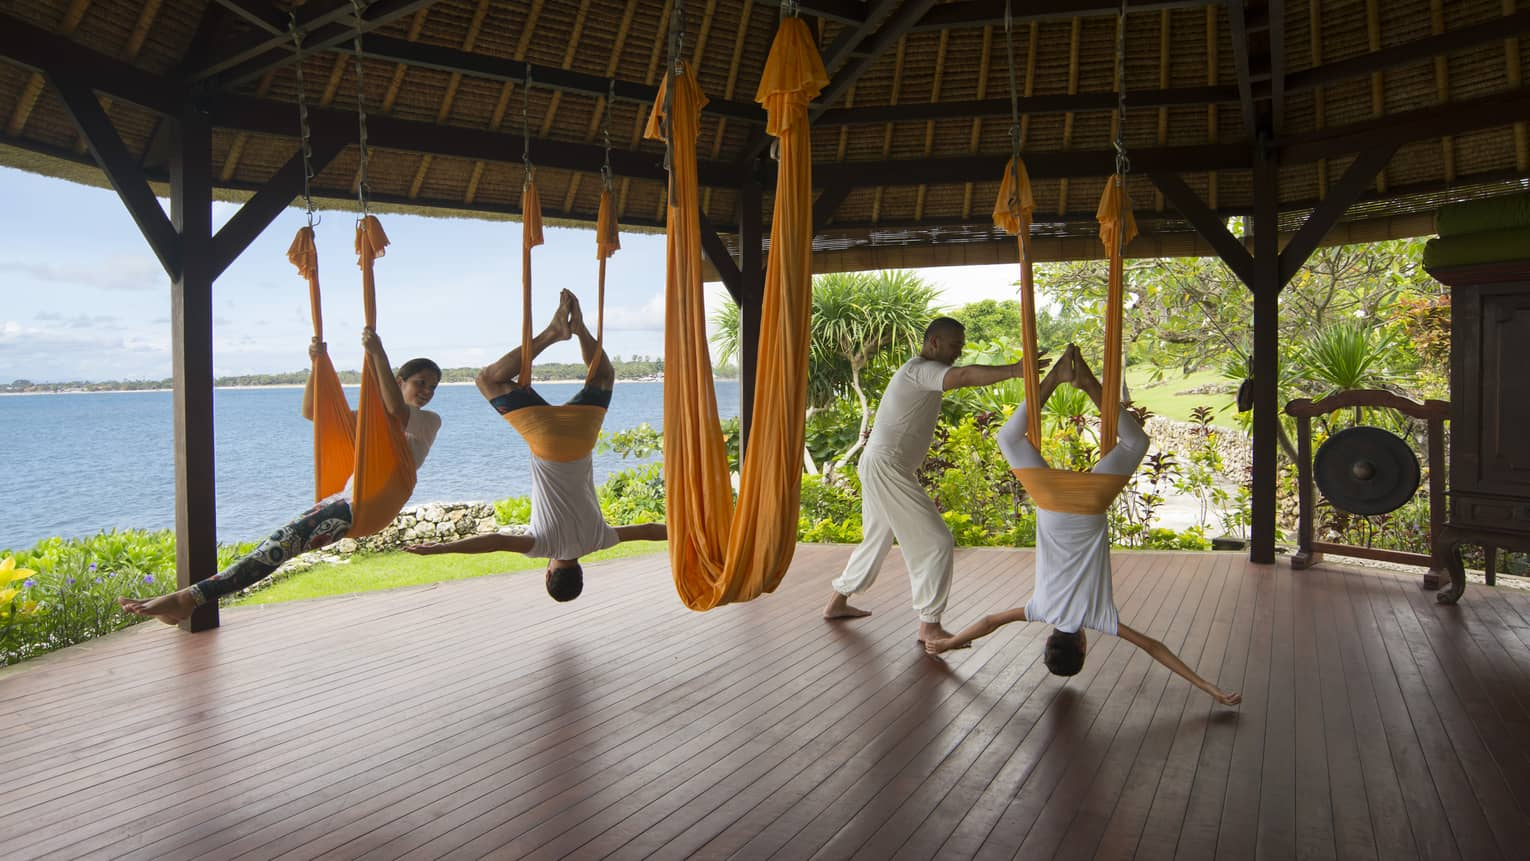 Guests hang from the ceiling as they are guided though rope yoga in an outdoor pavilion